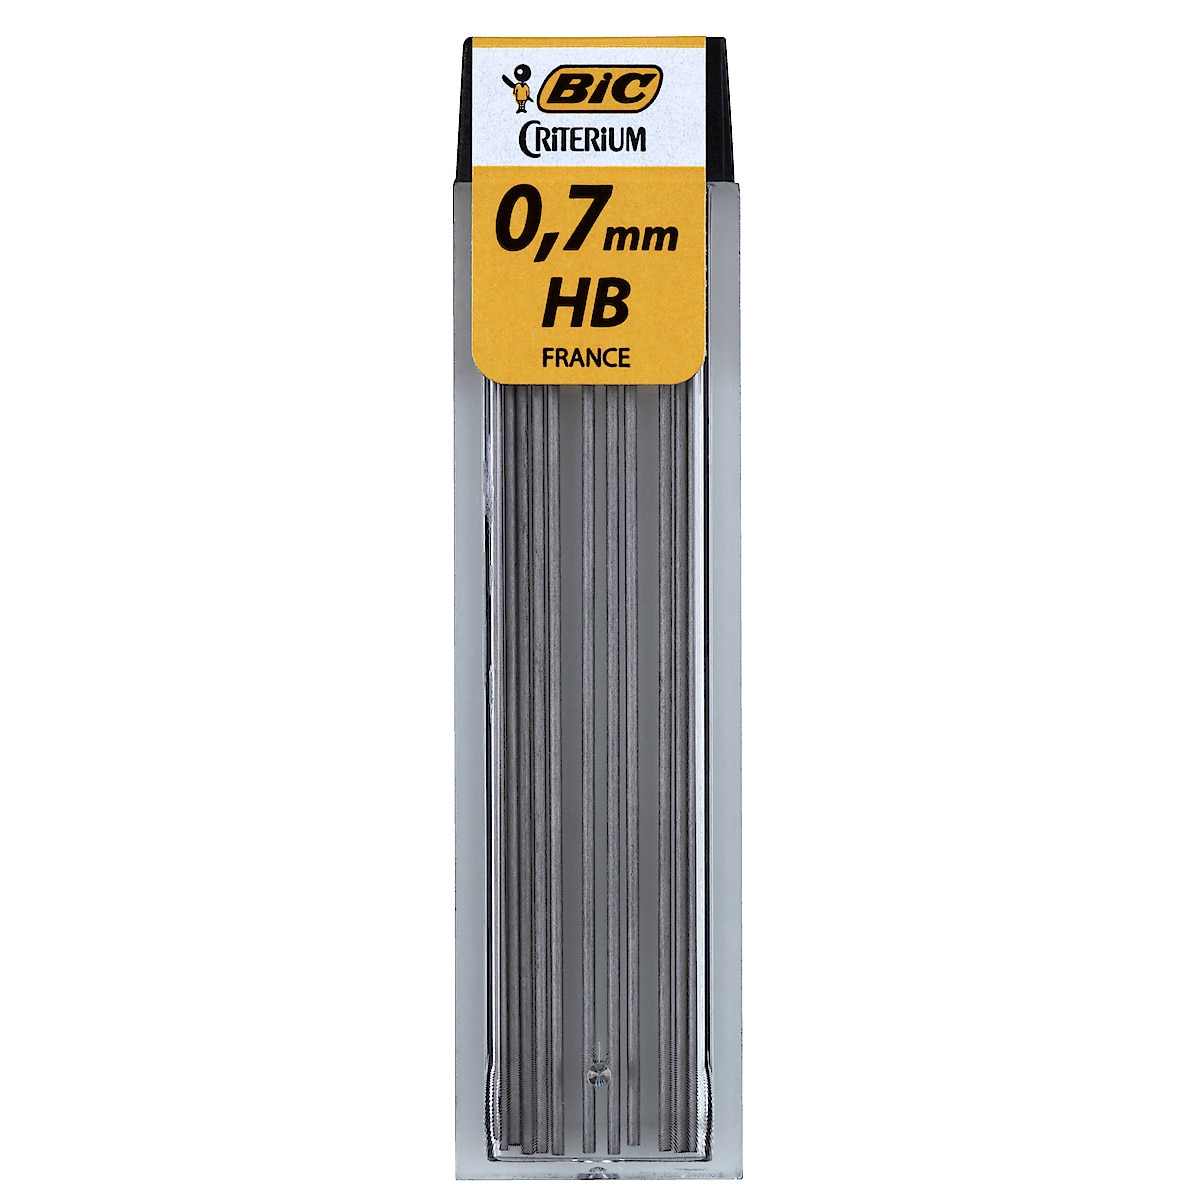 Bic 0.7 mm Pencil Leads